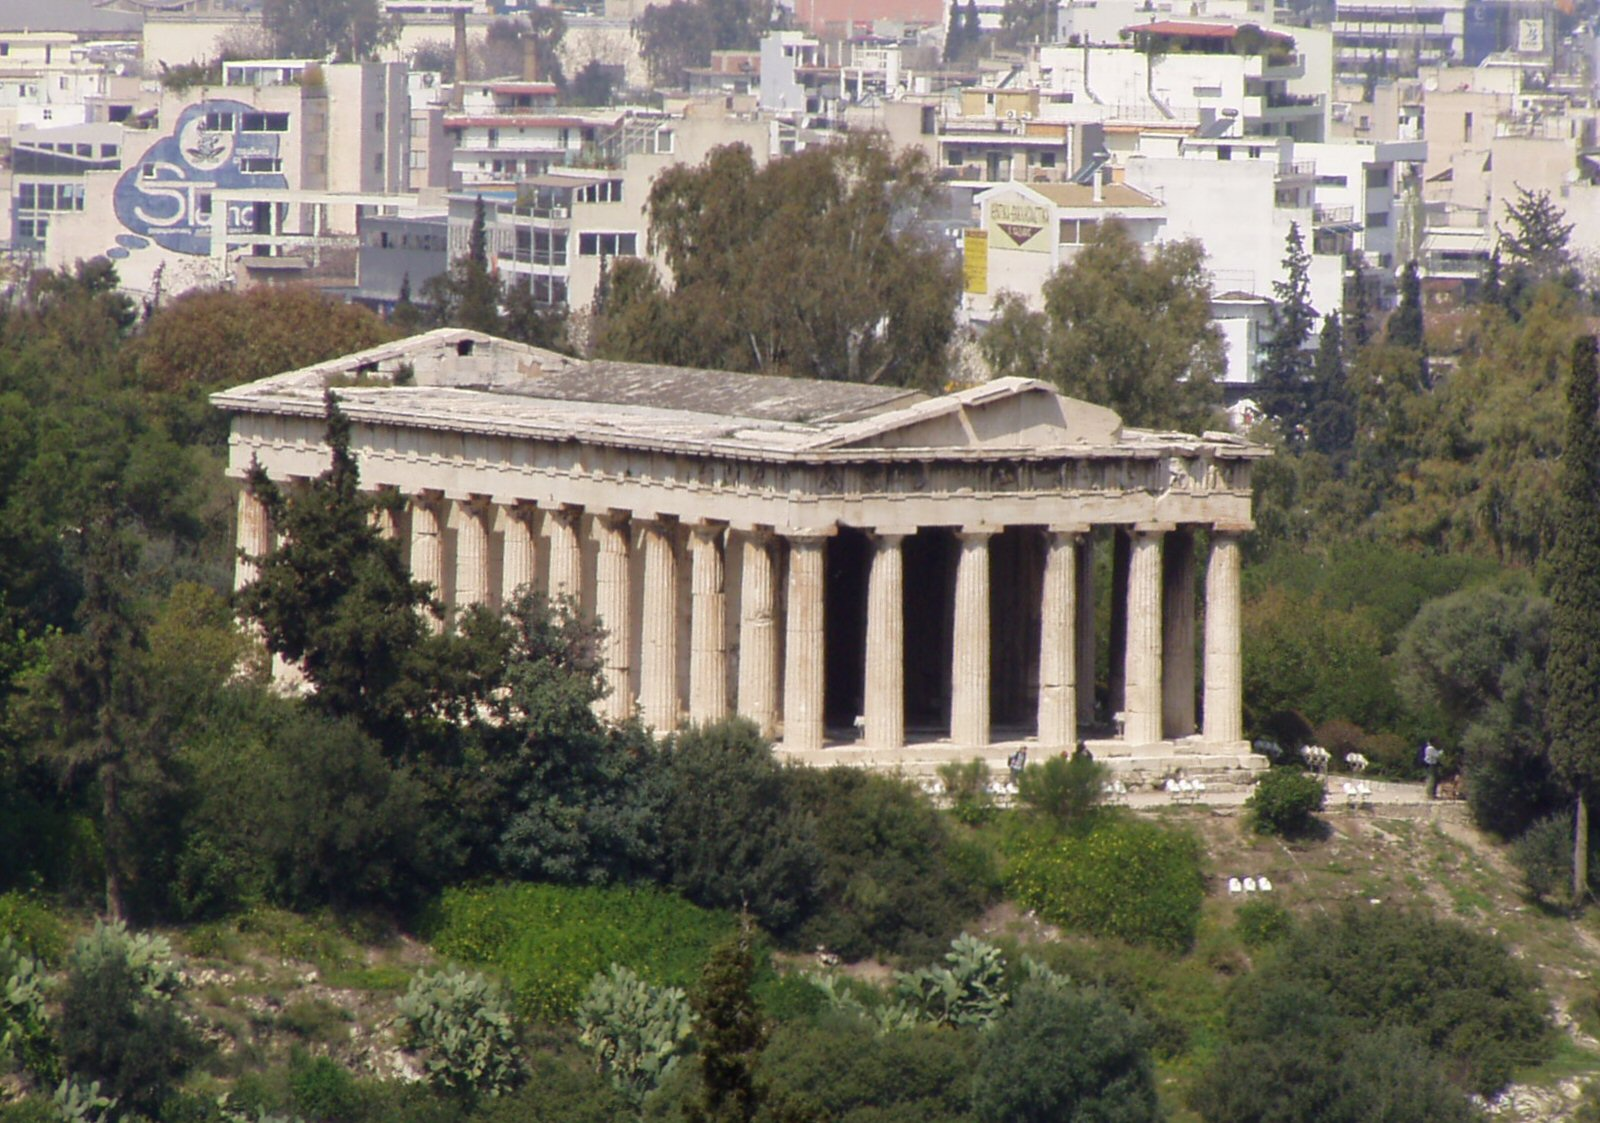 File:Temple of Hephaestus in Athens 2.jpg - Wikimedia Commons